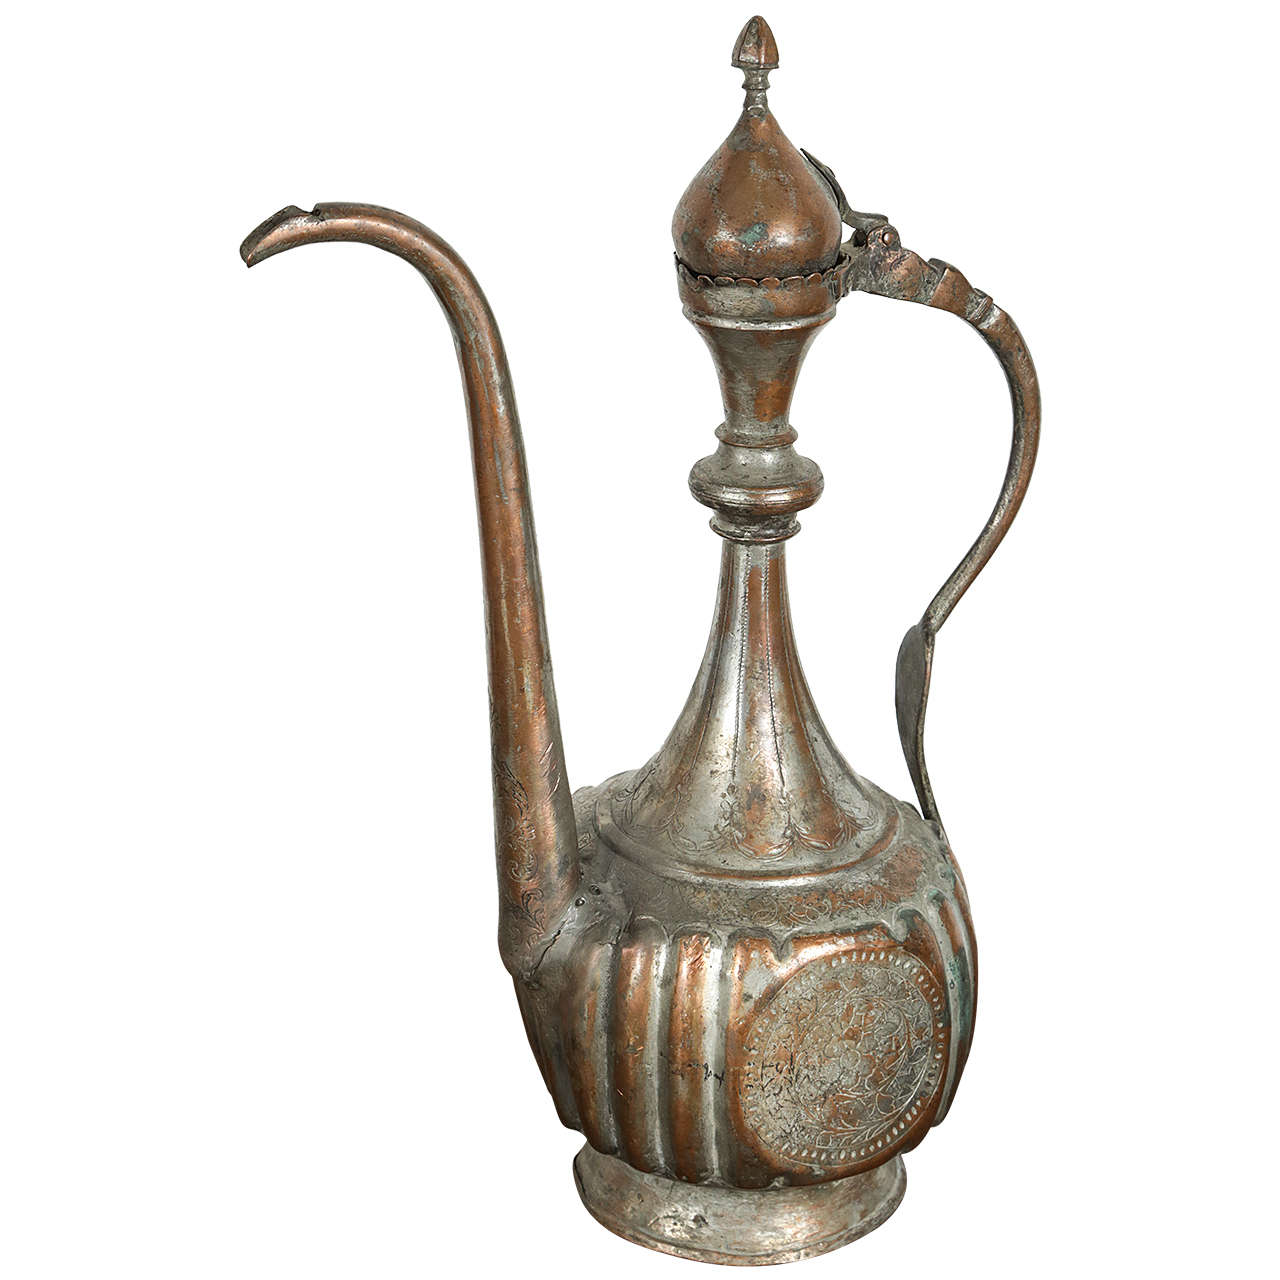 Antique 19th century middle eastern persian tinned copper ewer for antique 19th century middle eastern persian tinned copper ewer for sale reviewsmspy